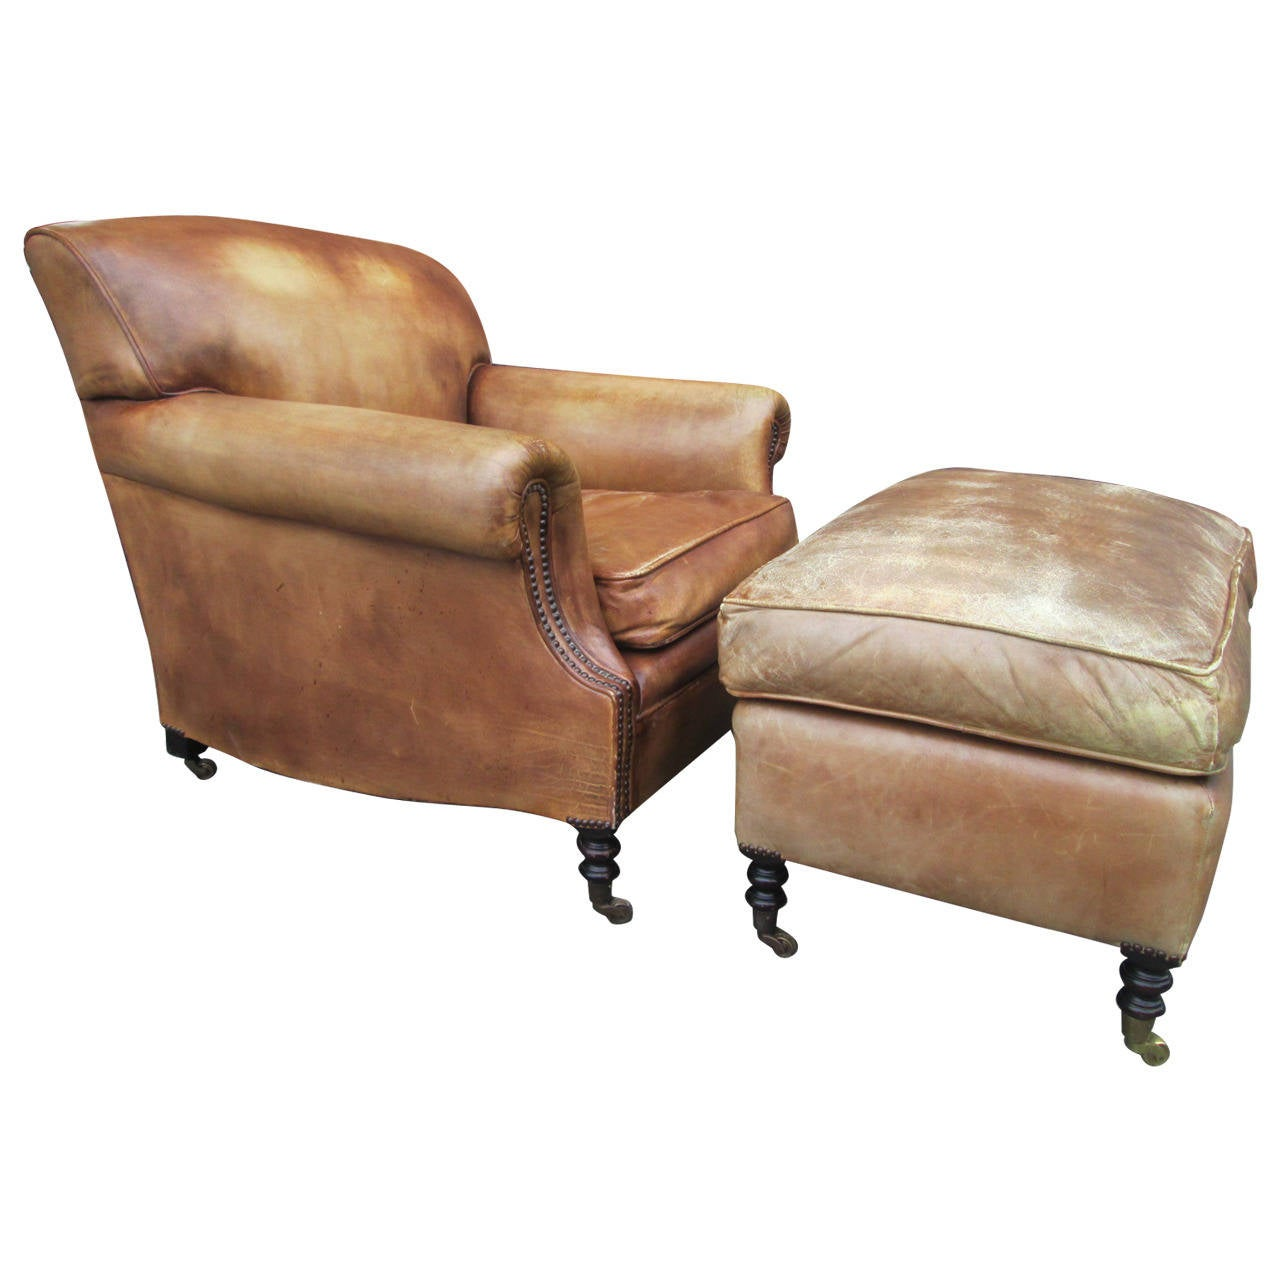 Elegant Leather Lounge Chair And Ottoman By George Smith 1